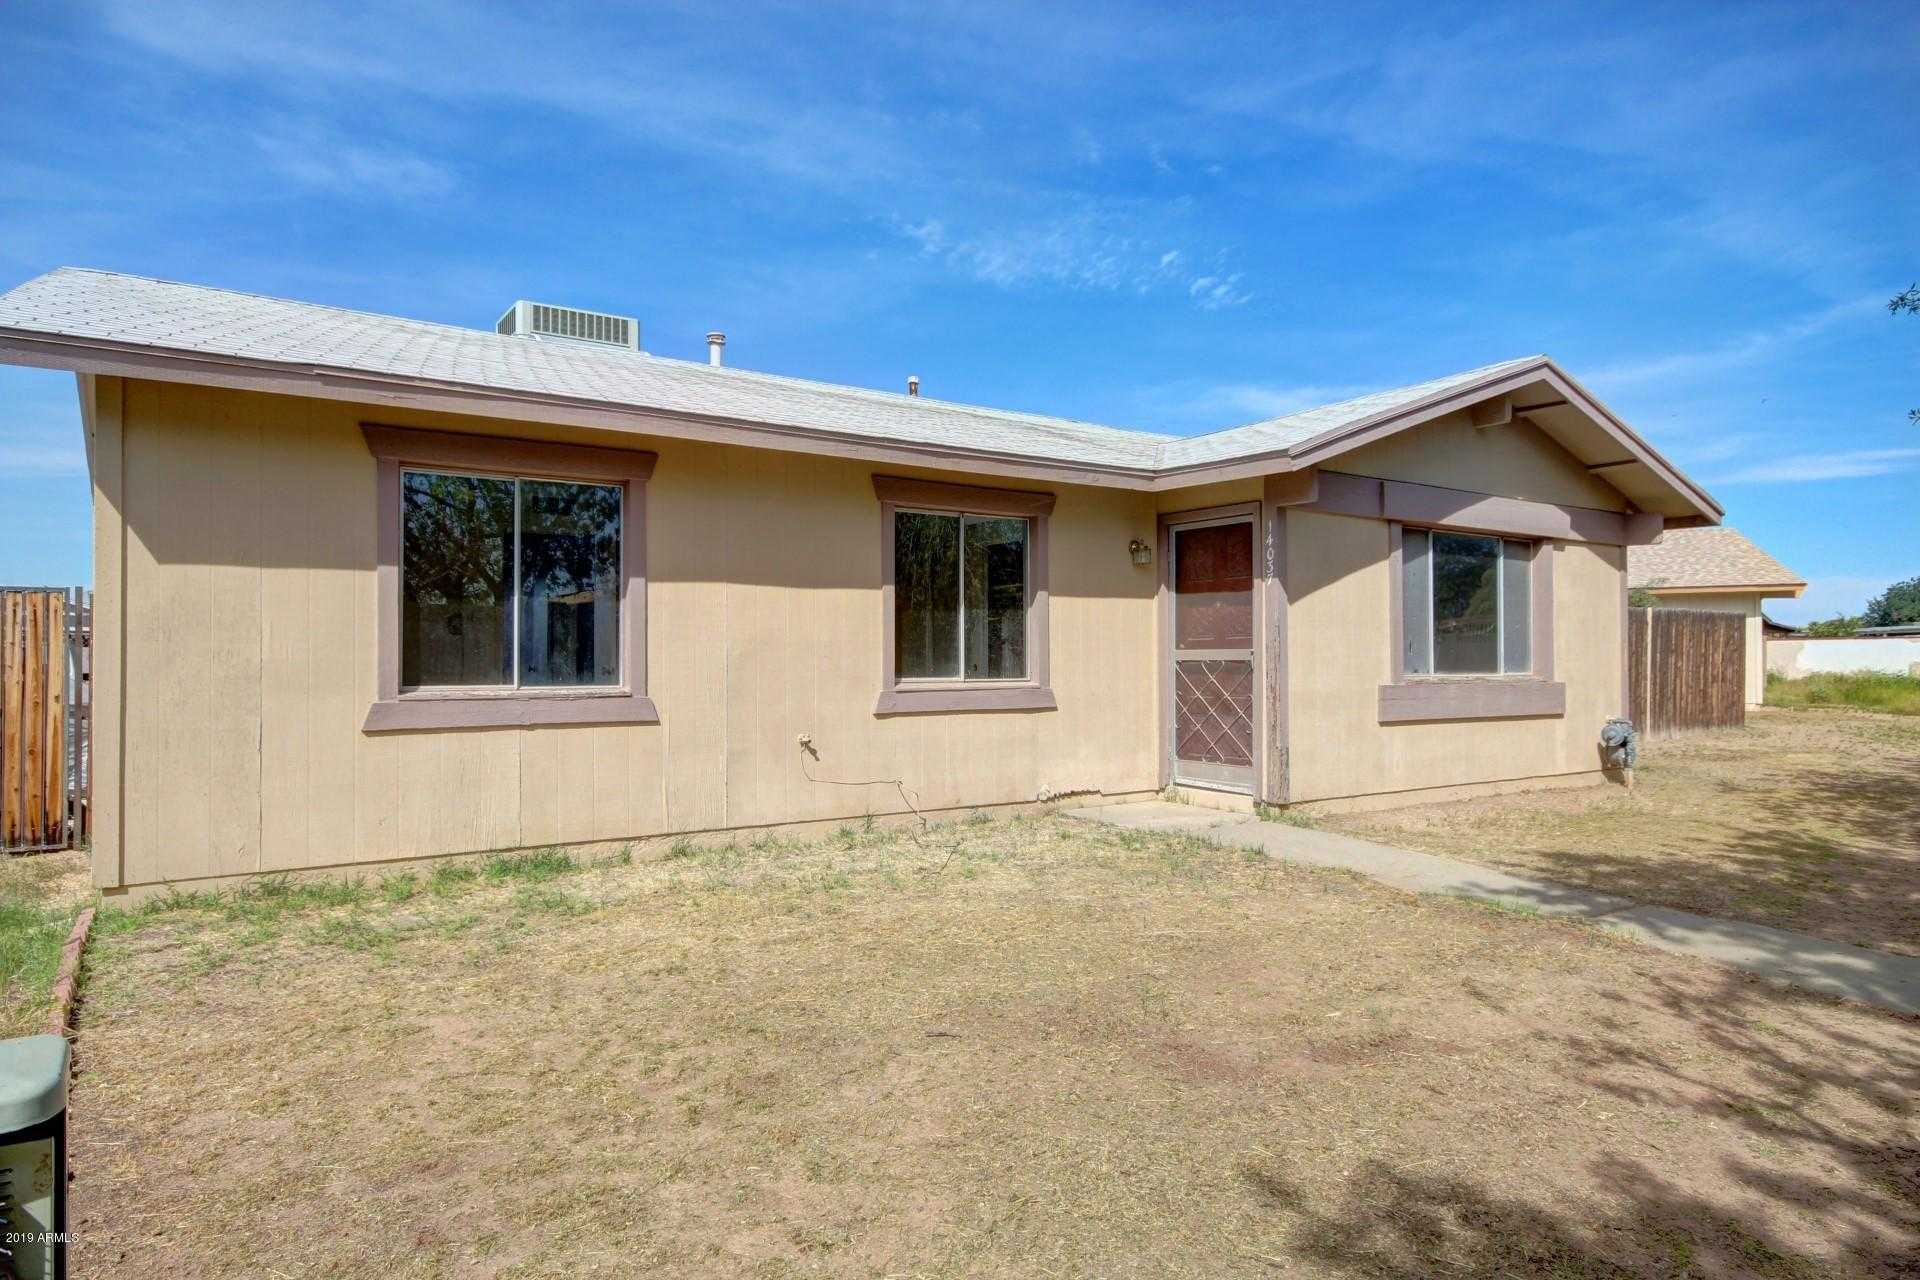 $216,000 - 3Br/2Ba - Home for Sale in Patio Homes North 4, Glendale